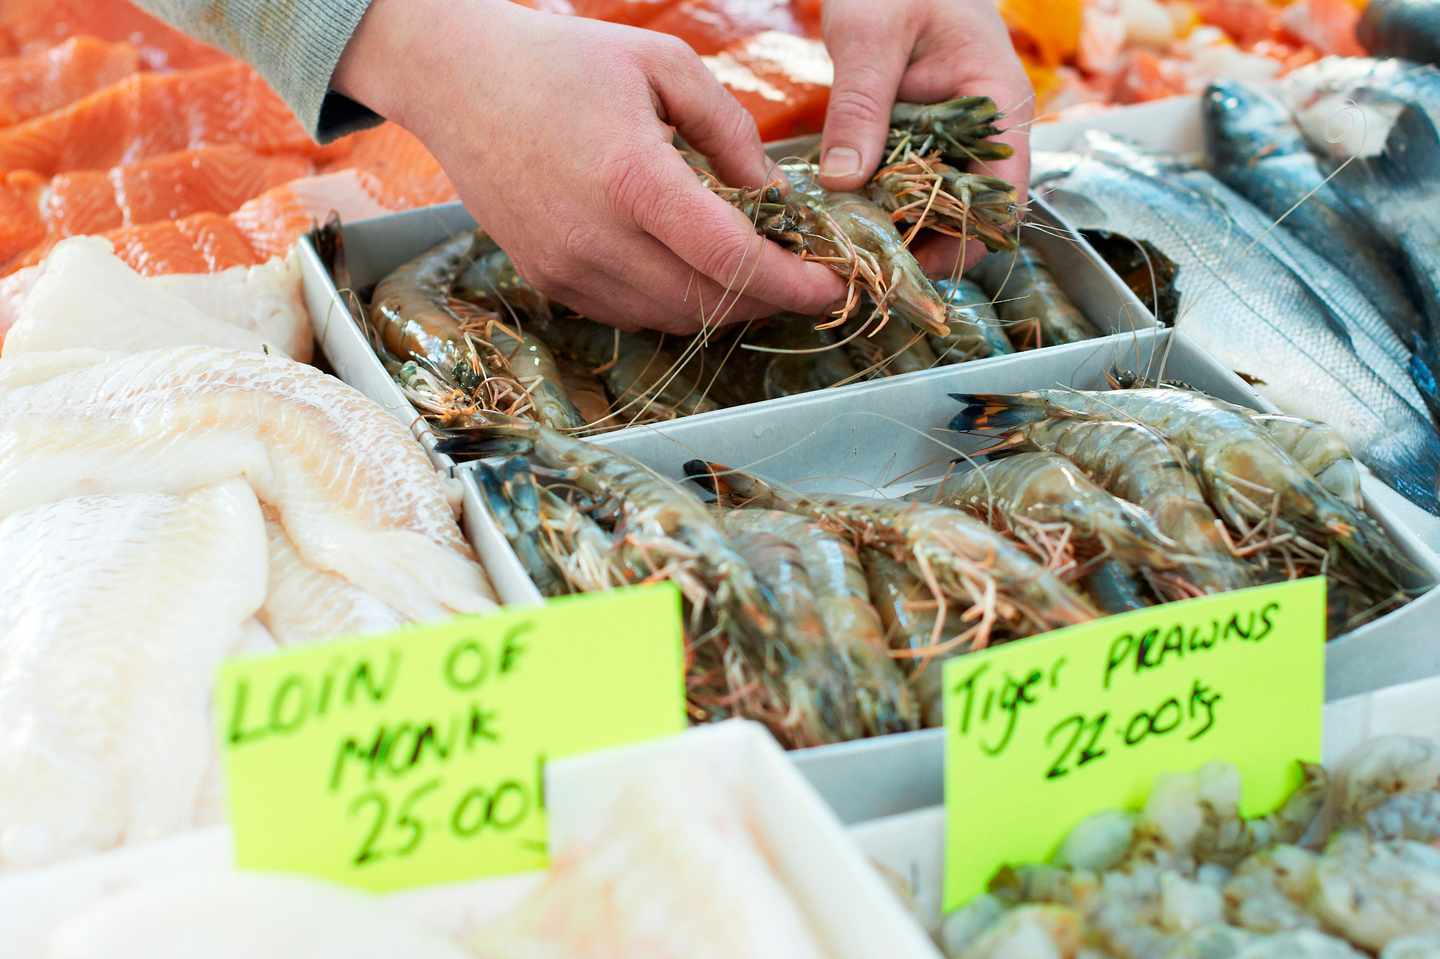 Fresh selection of seafood at stall being handled by fishmonger, St Georges market Belfast Northern Ireland